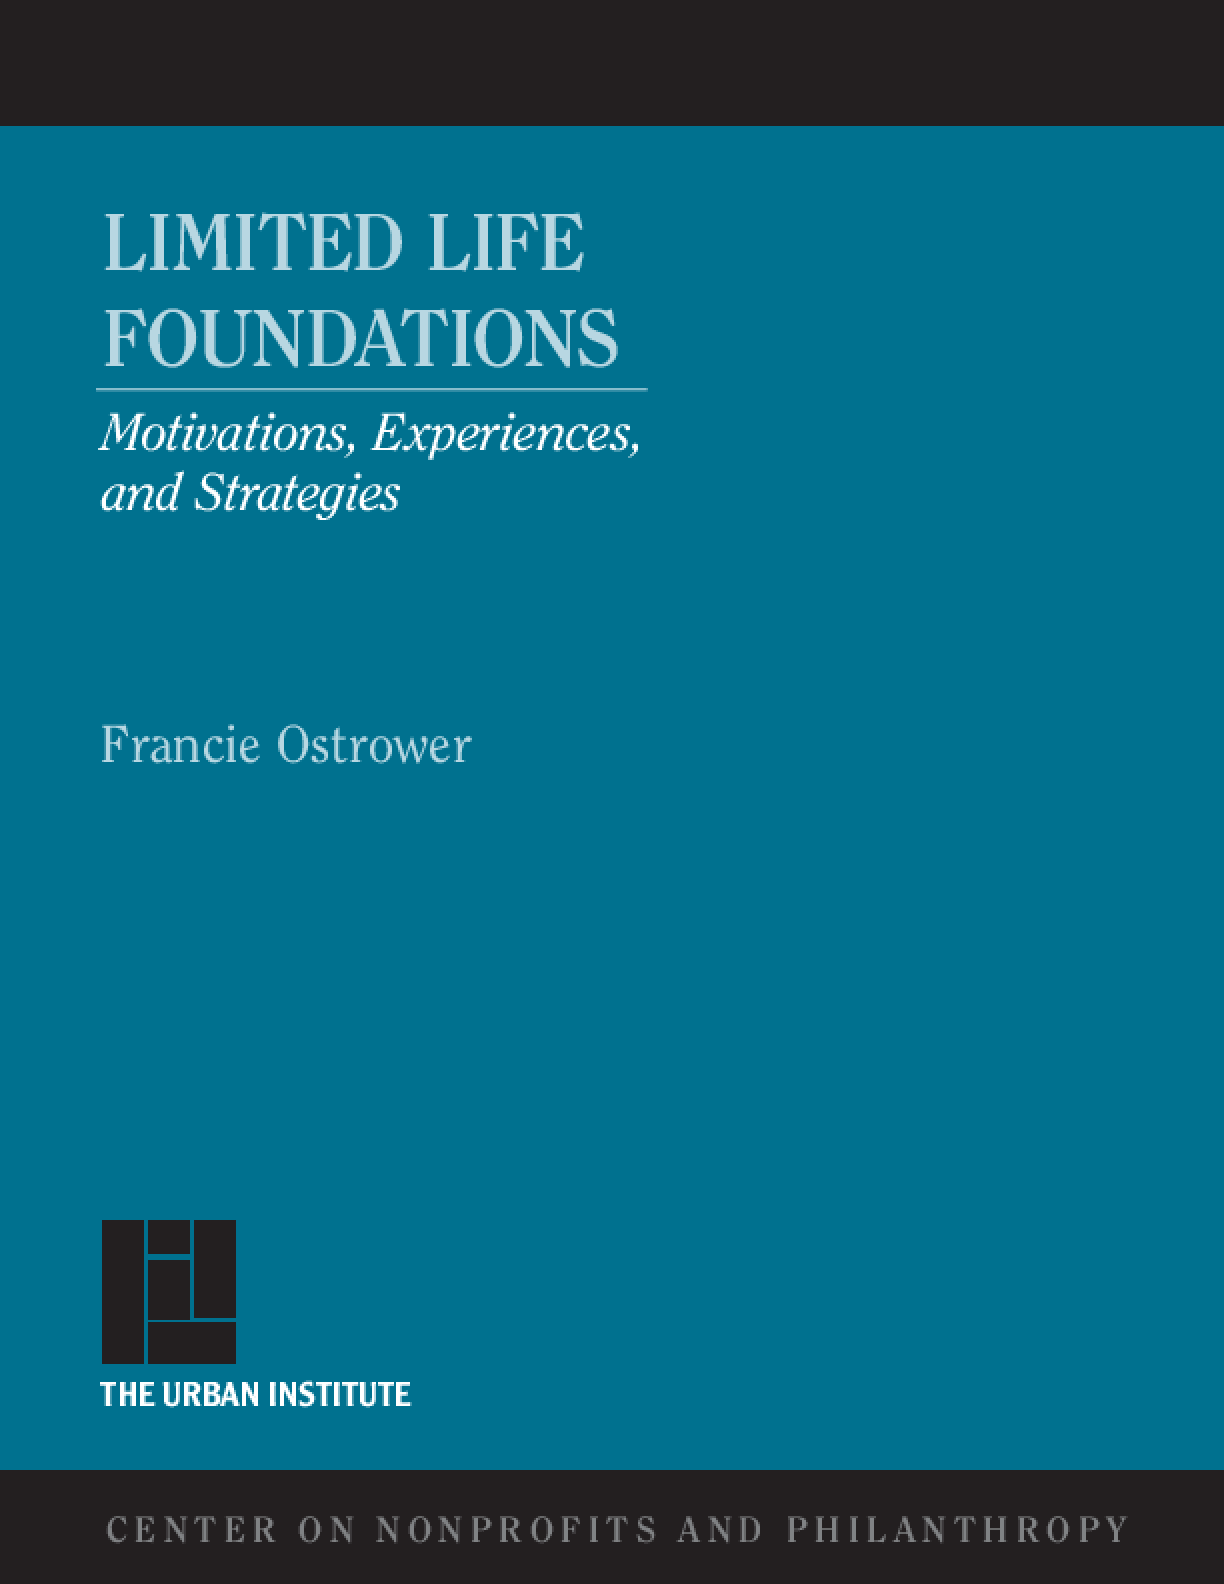 Limited Life Foundations: Motivations, Experiences, and Strategies